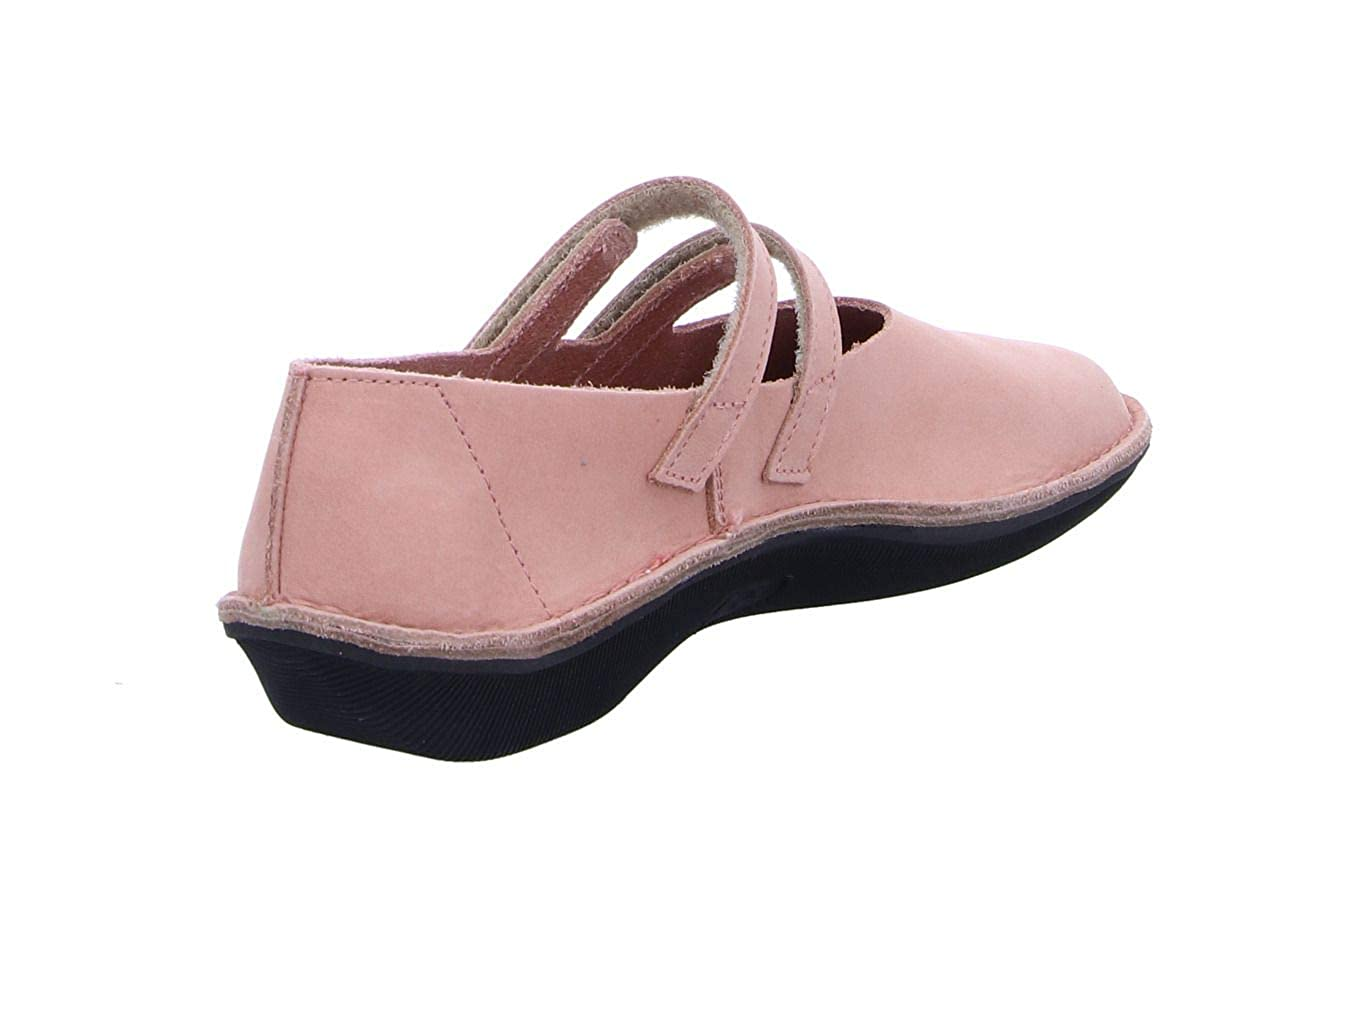 Loints of Holland Spangenschuhe Turbo 39331-0458 Damen Ballerina & Spangenschuhe Holland 731357